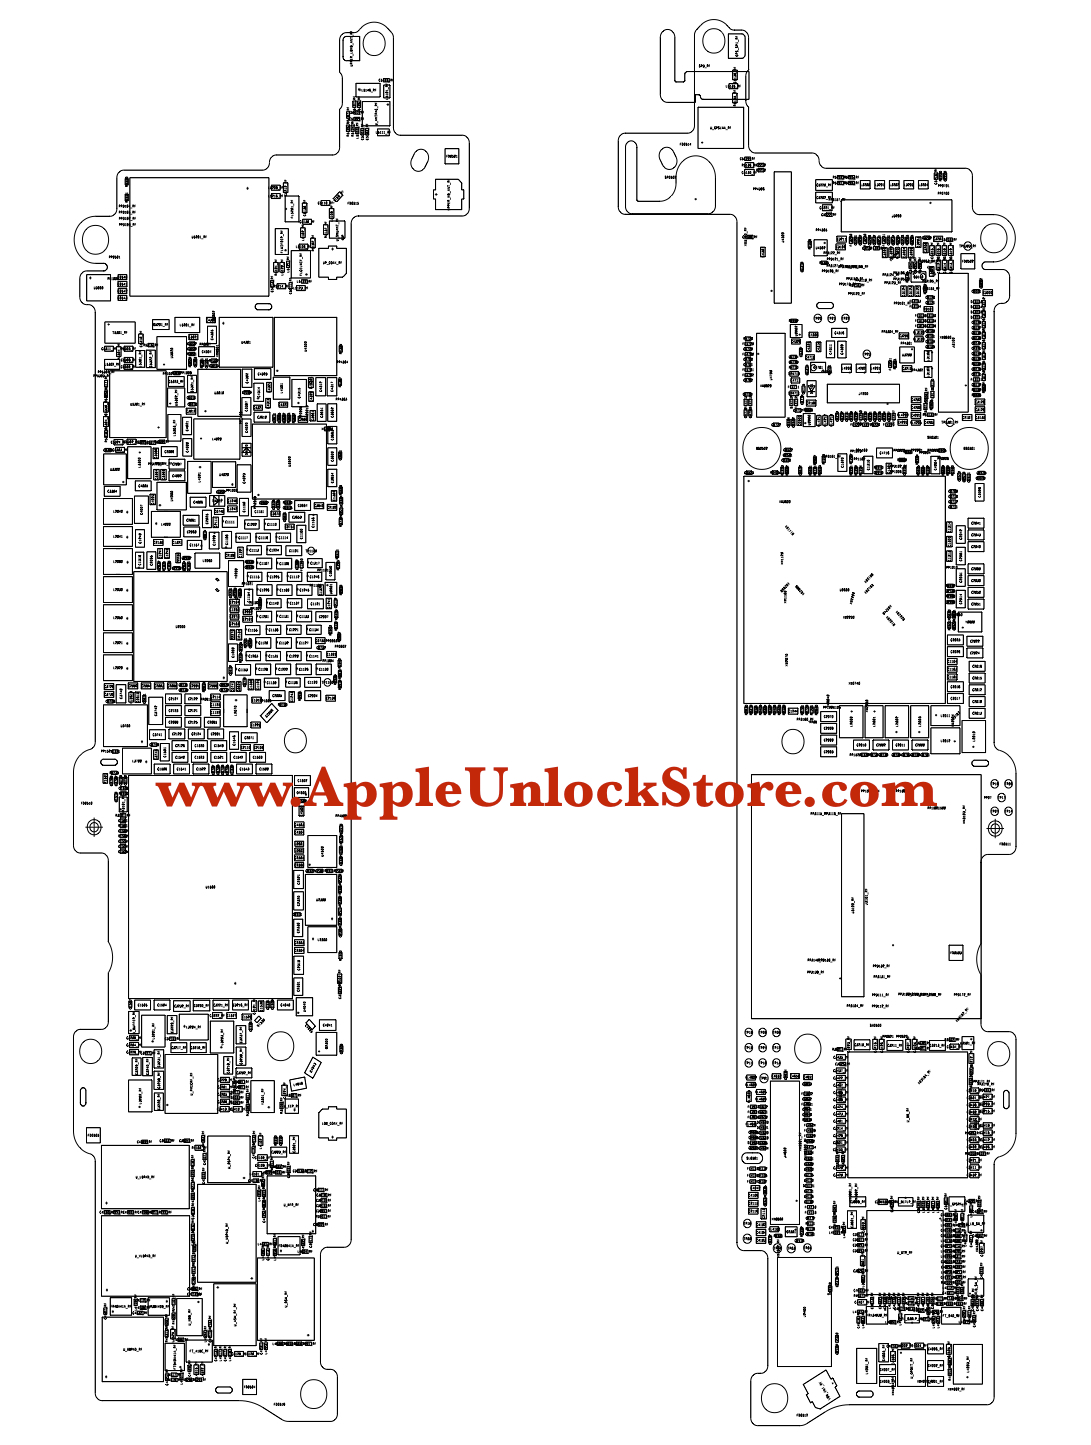 AppleUnlockStore :: Service Manuals :: iPhone SE Circuit